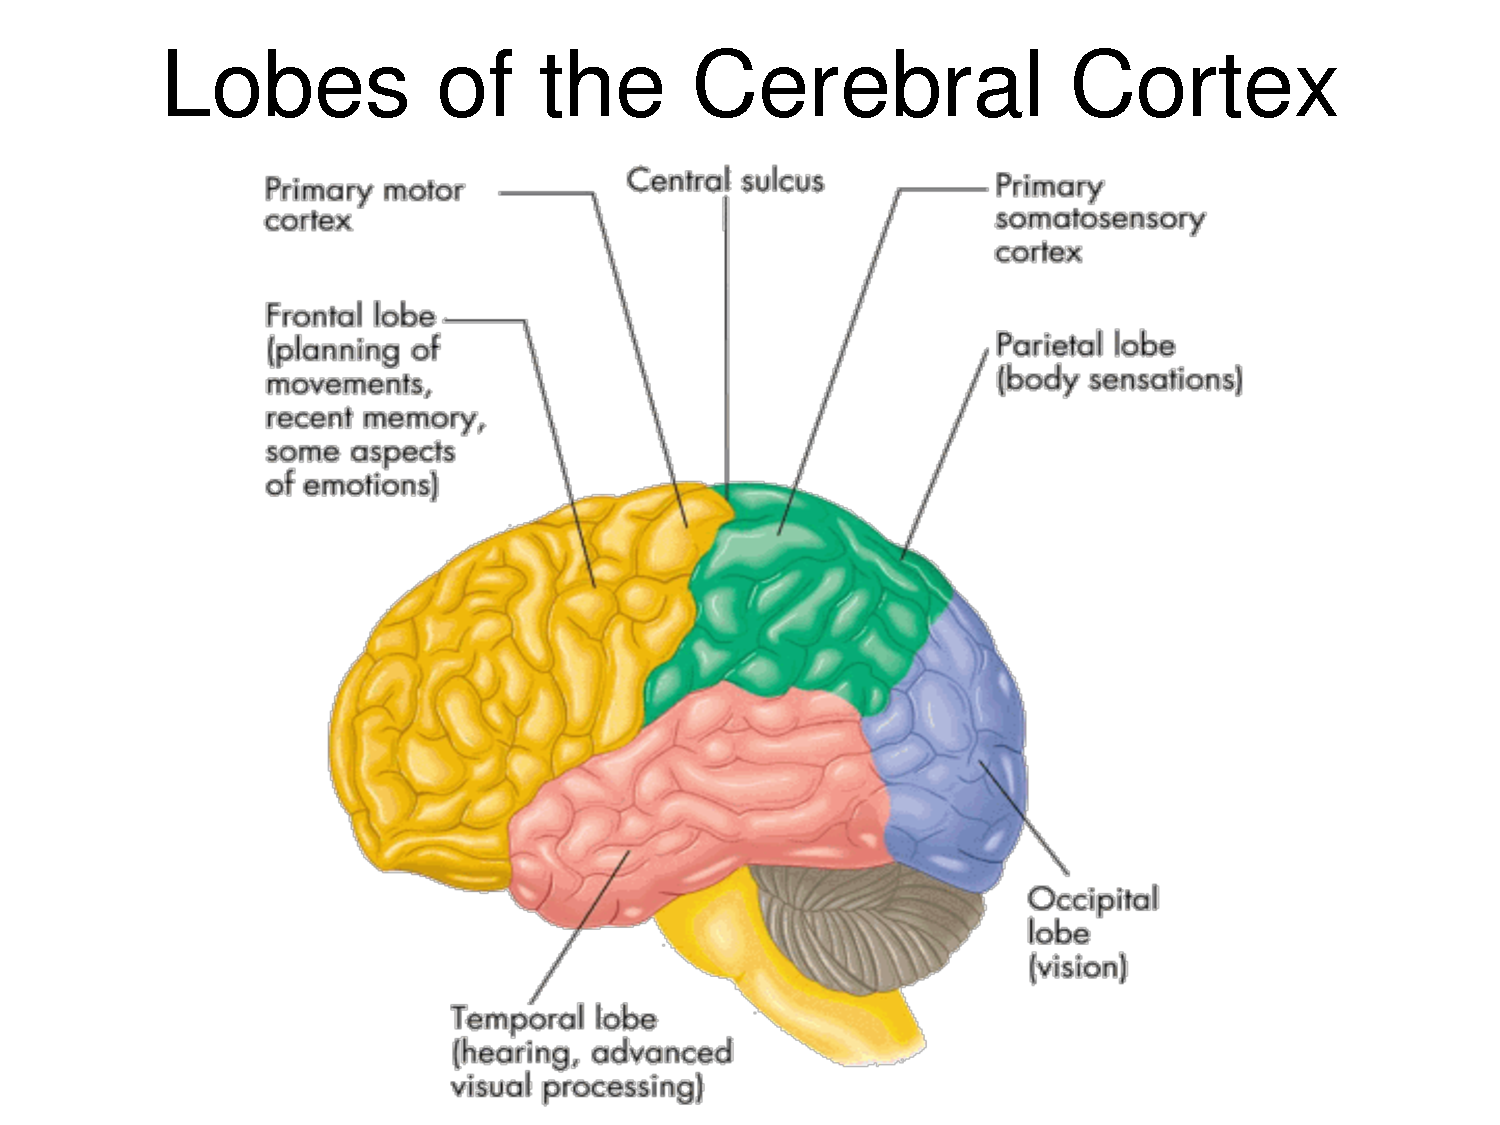 The Cerebral Cortex Is The Outermost Layered Structure Of